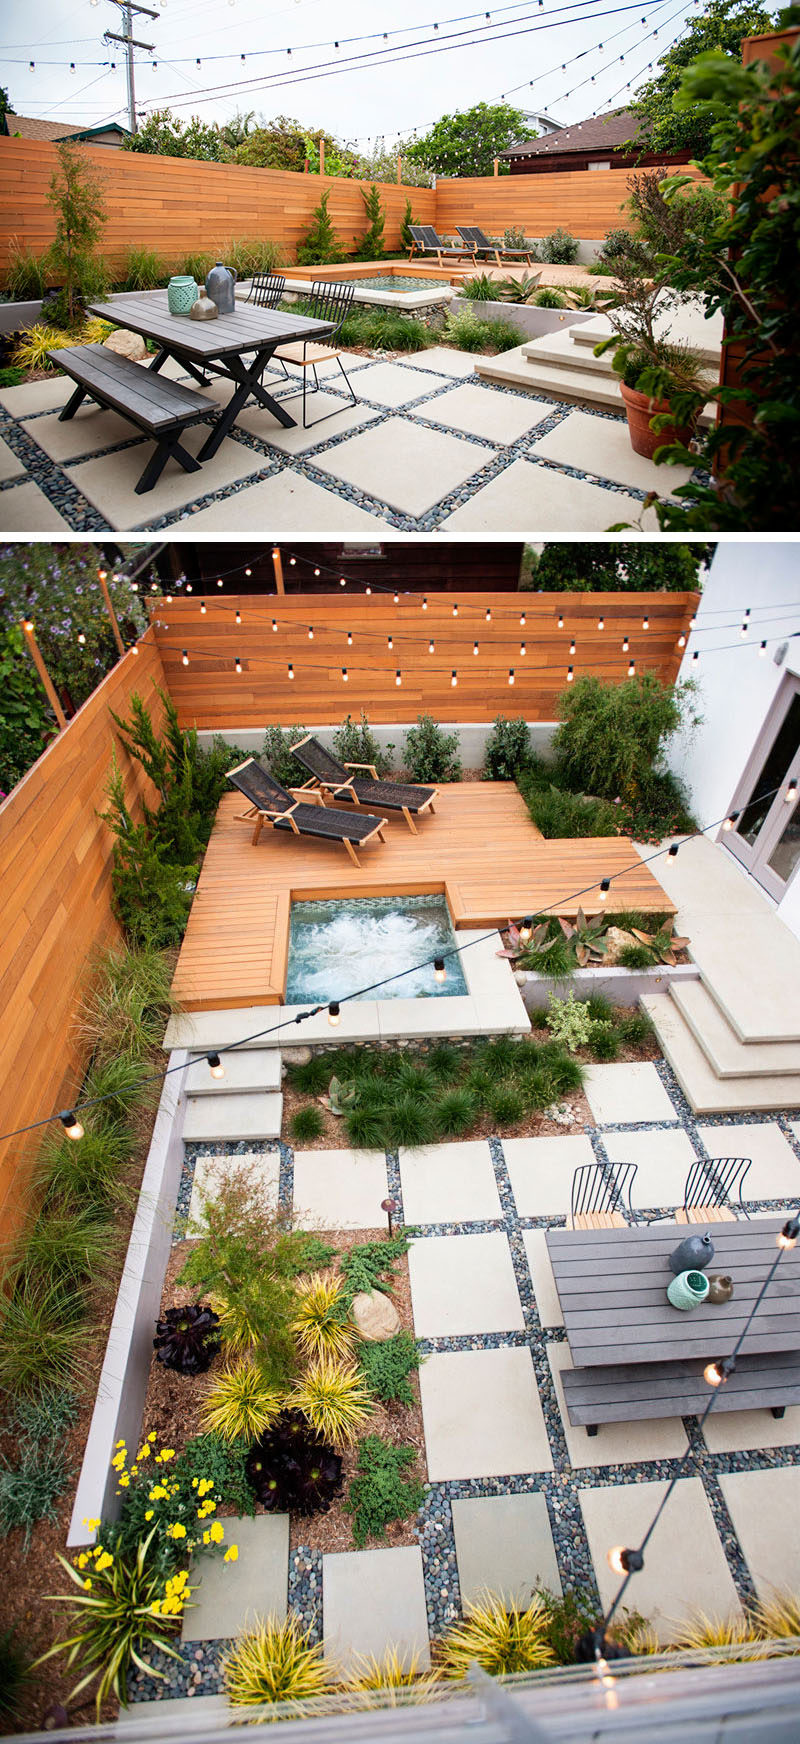 Landscaping Design Ideas - 11 Backyards Designed For ... on Yard Remodel Ideas id=68828